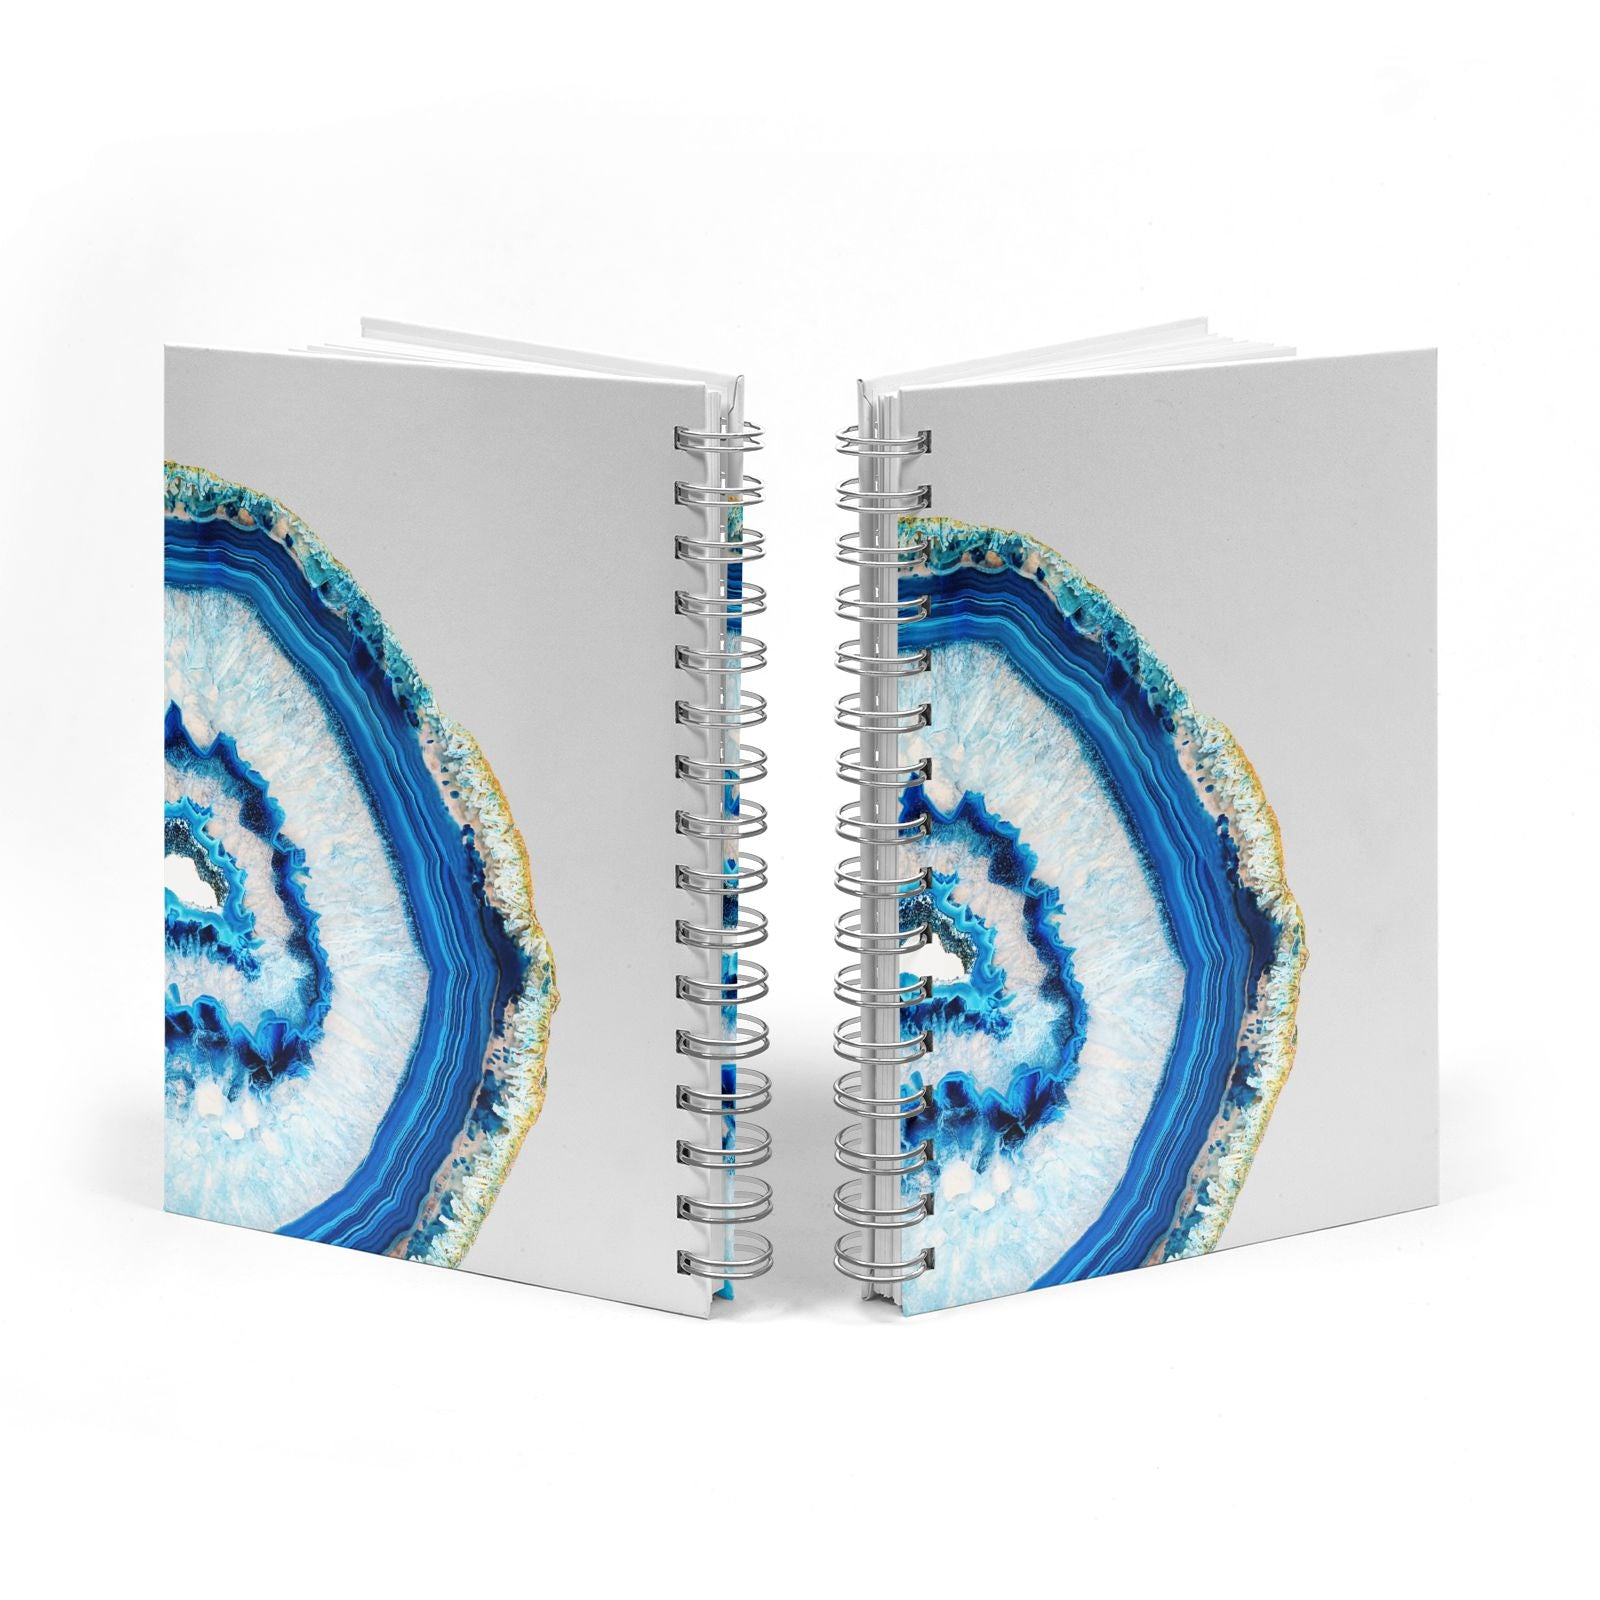 Agate Dark Blue and Turquoise Notebook with Silver Coil Spine View